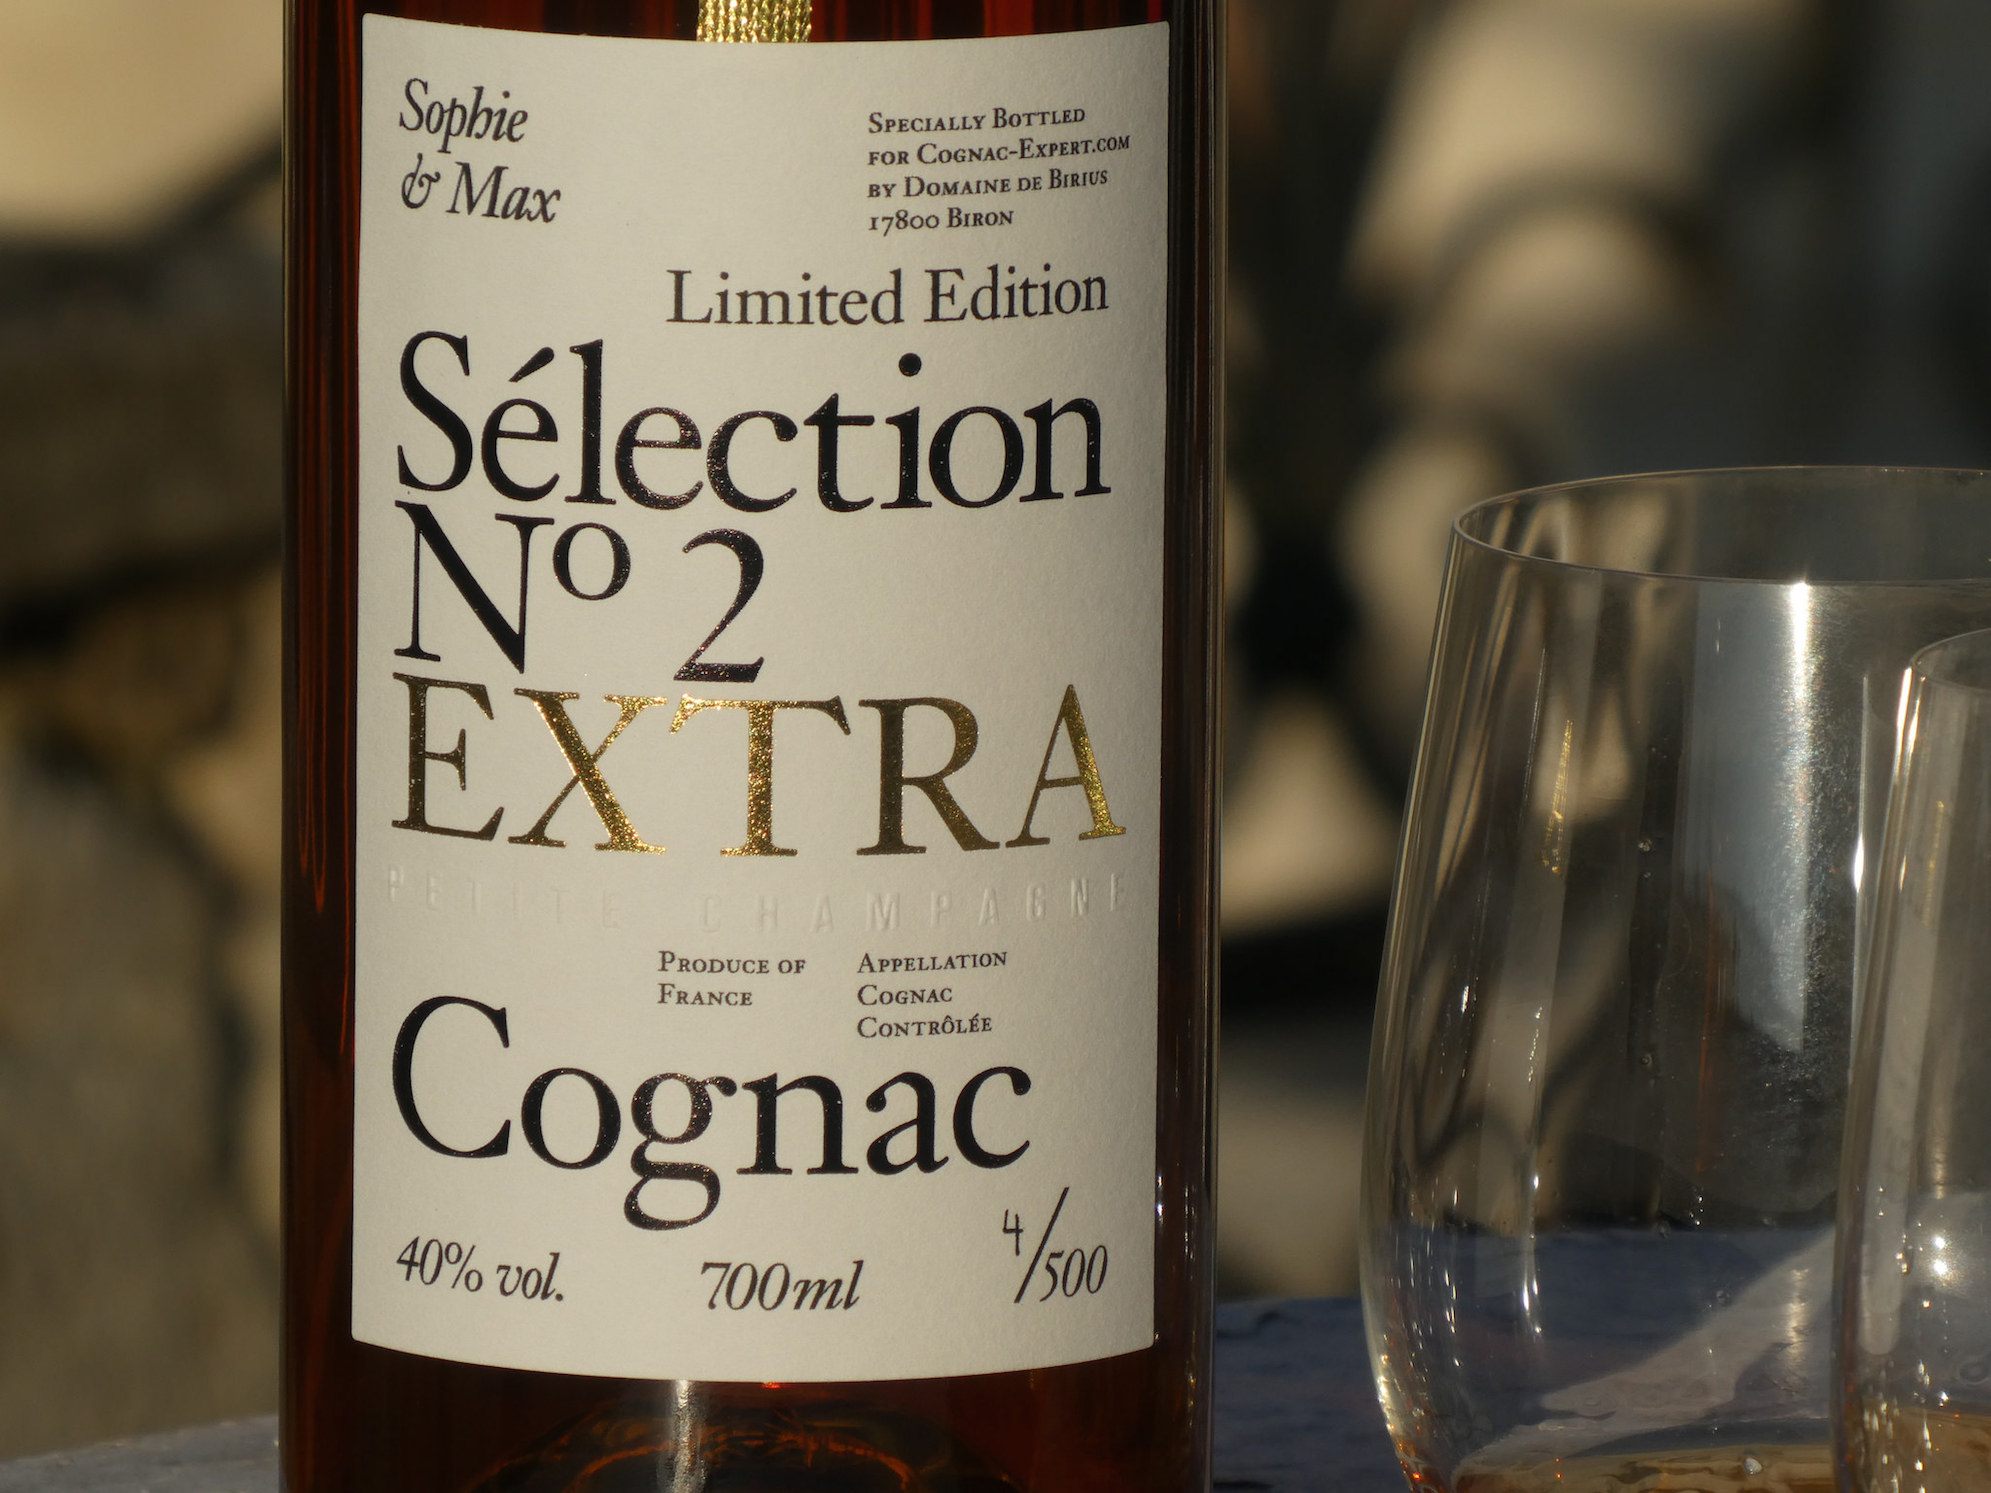 The Making Of: Sophie & Max Sélection N° 2 Limited Edition Cognac